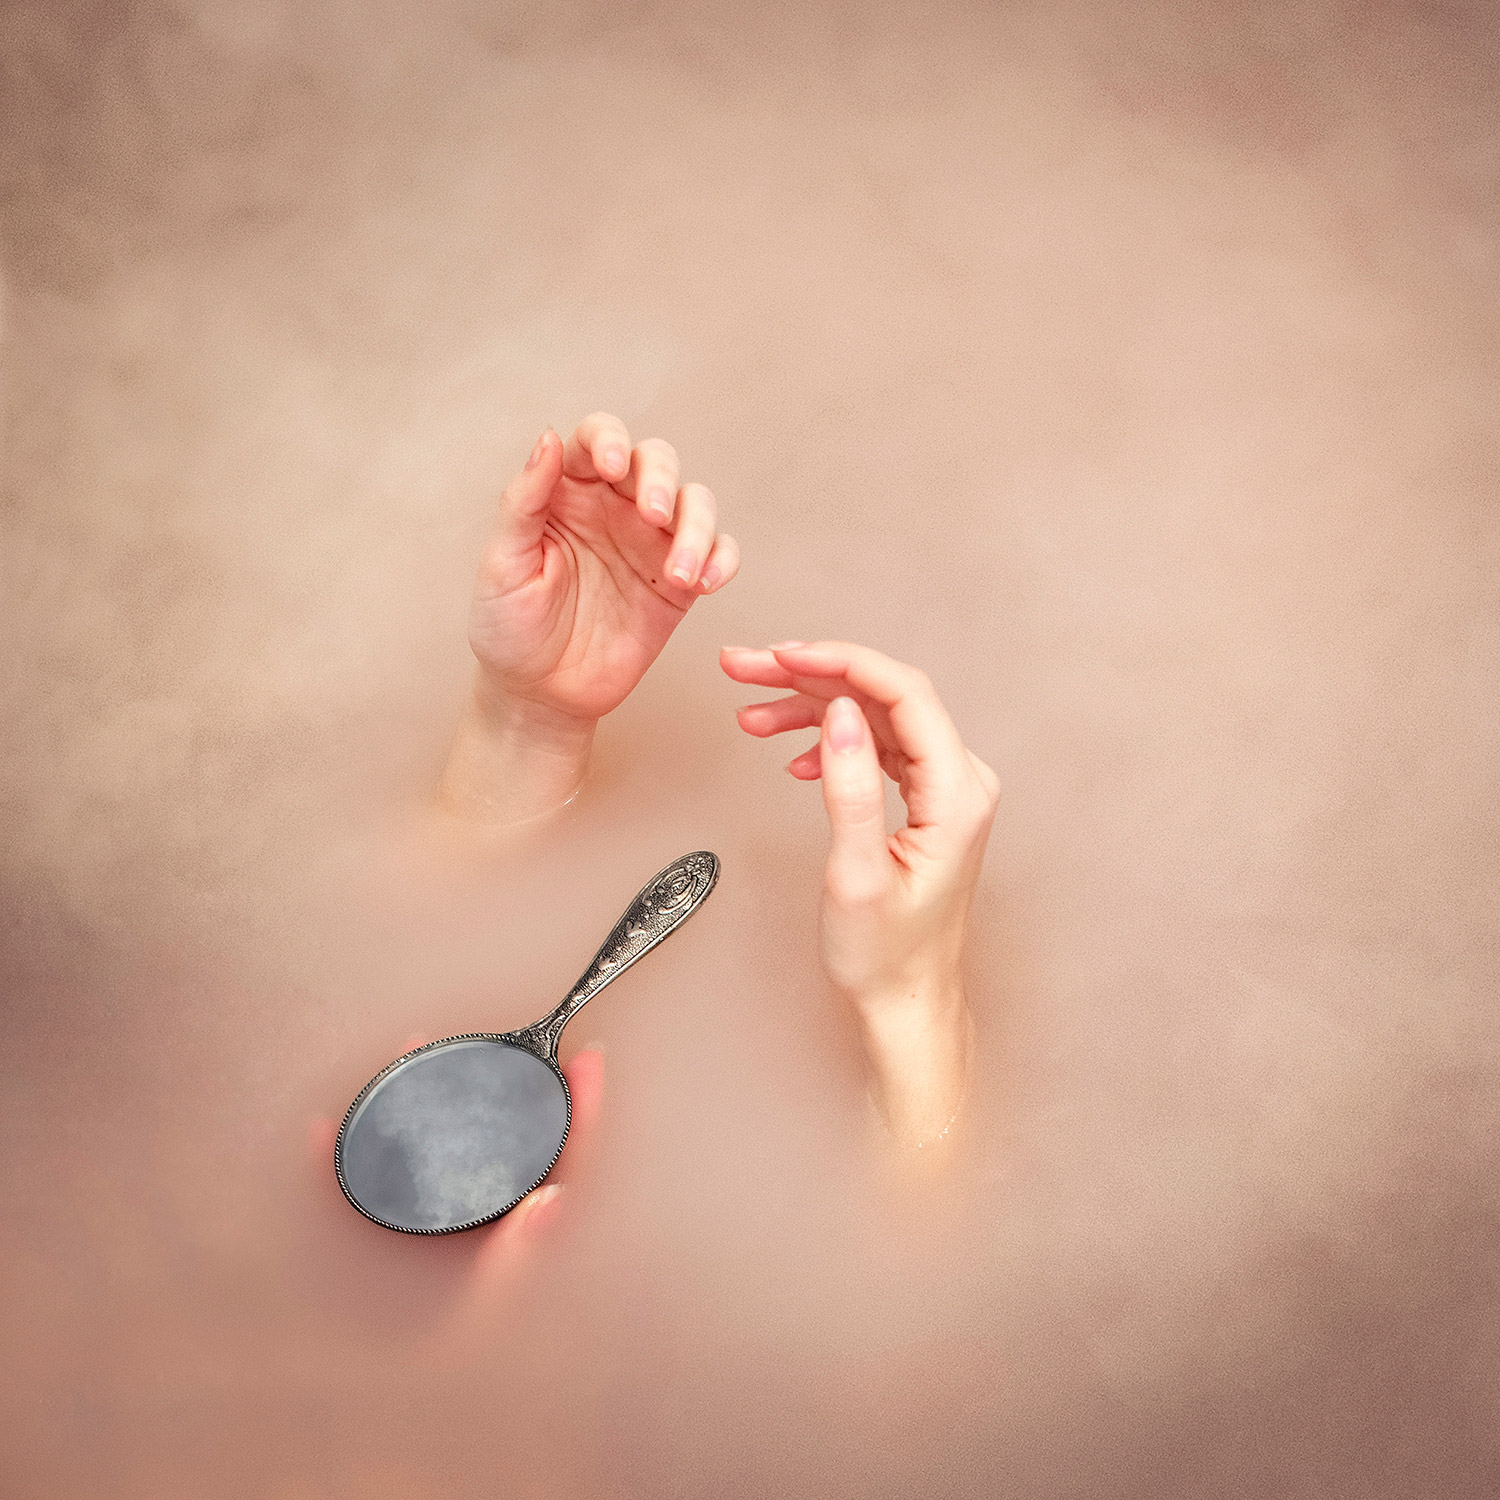 Brooke DiDonato - hands and mirror in pink water